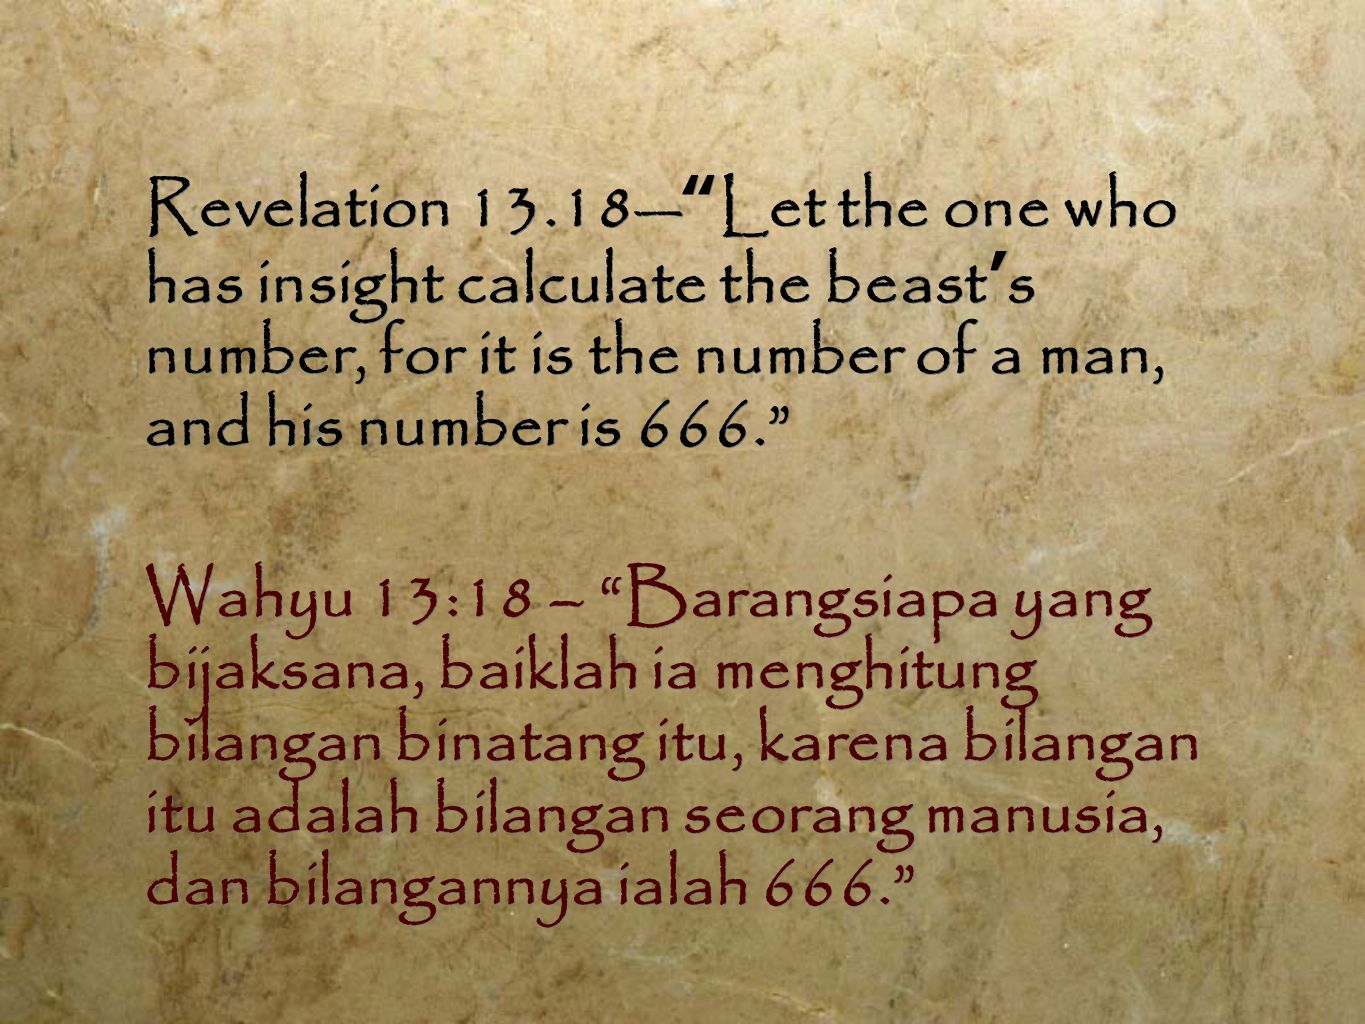 "Revelation 13.18— "" Let the one who has insight calculate the beast ' s number, for it is the number of a man, and his number is 666."" Wahyu 13:18 – """